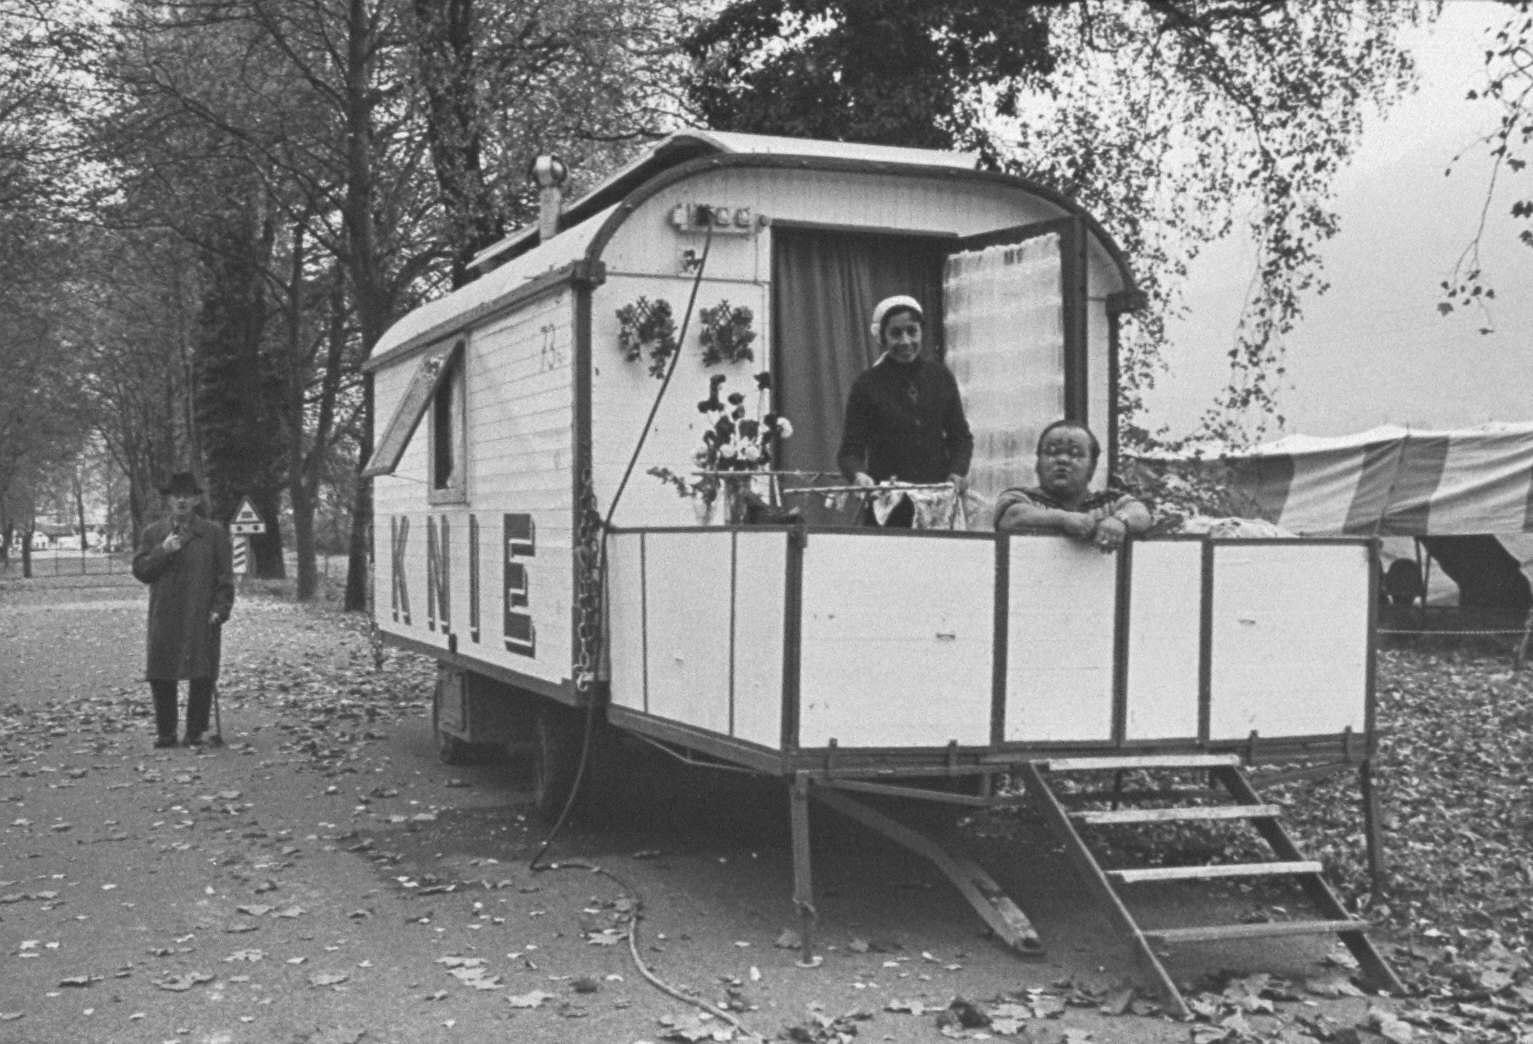 Circus Performers in Trailer-Circus Knie